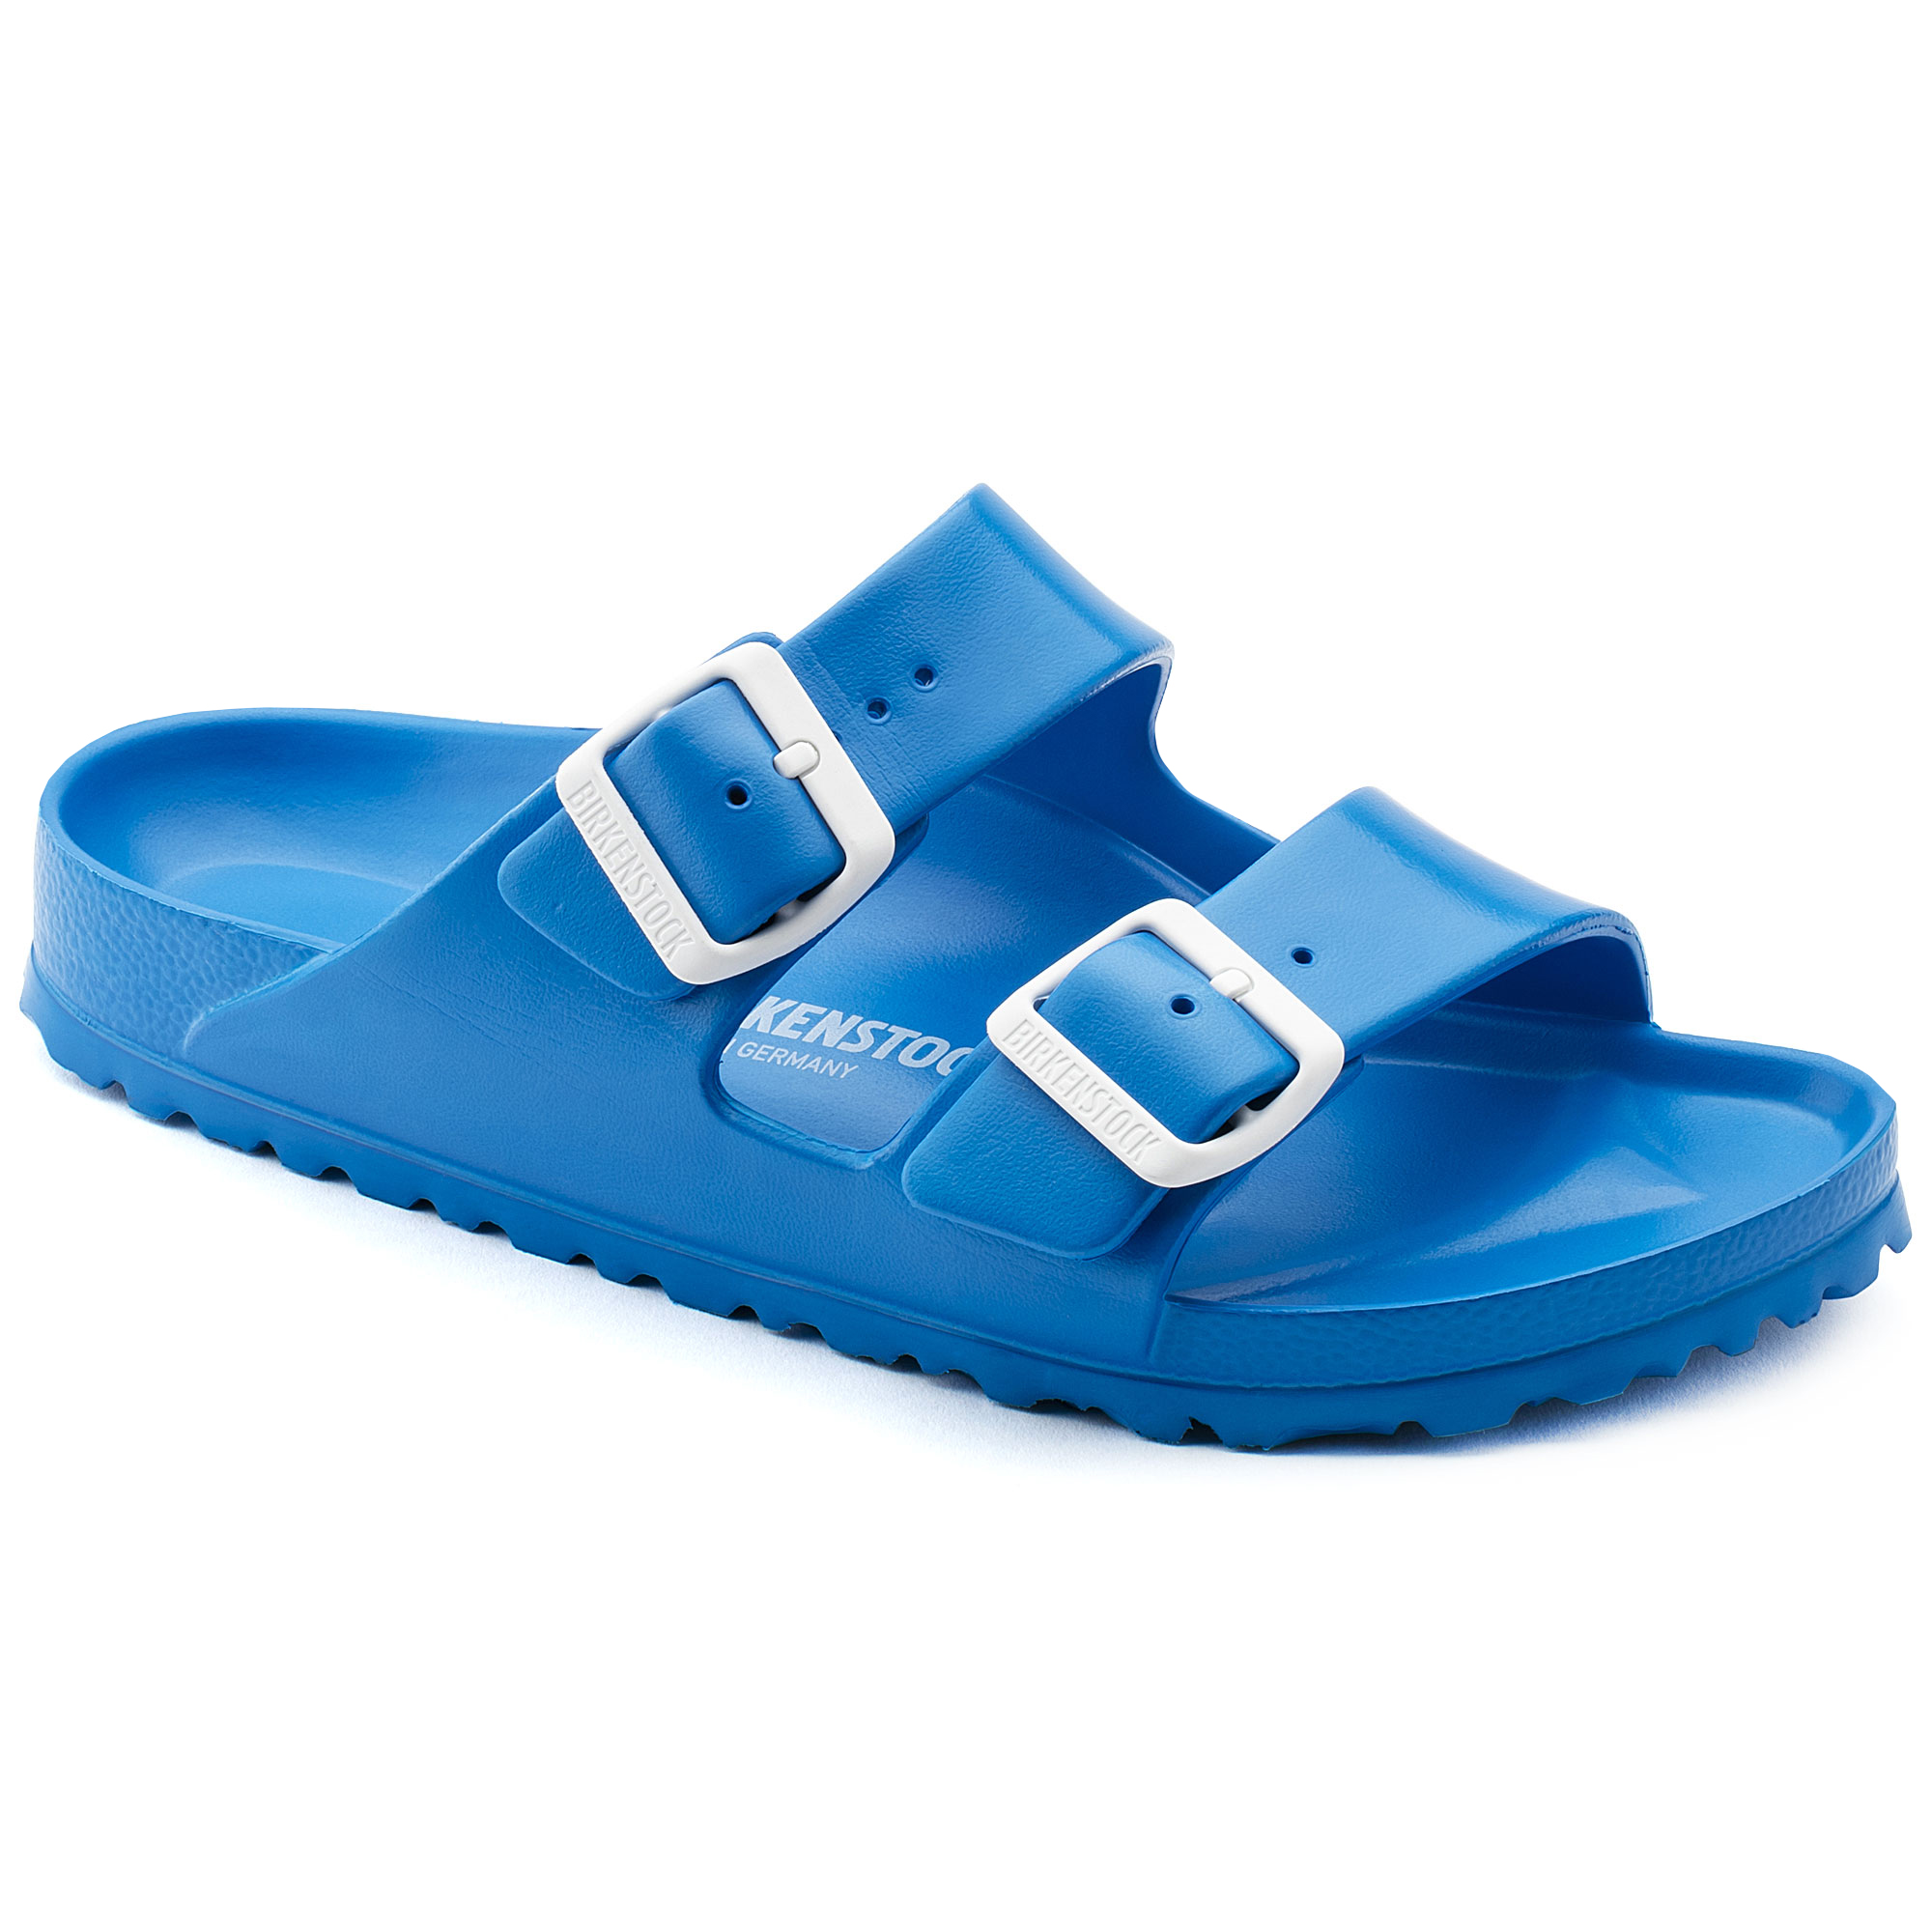 ff5cb79ed5485 Arizona EVA Scuba Blue | shop online at BIRKENSTOCK